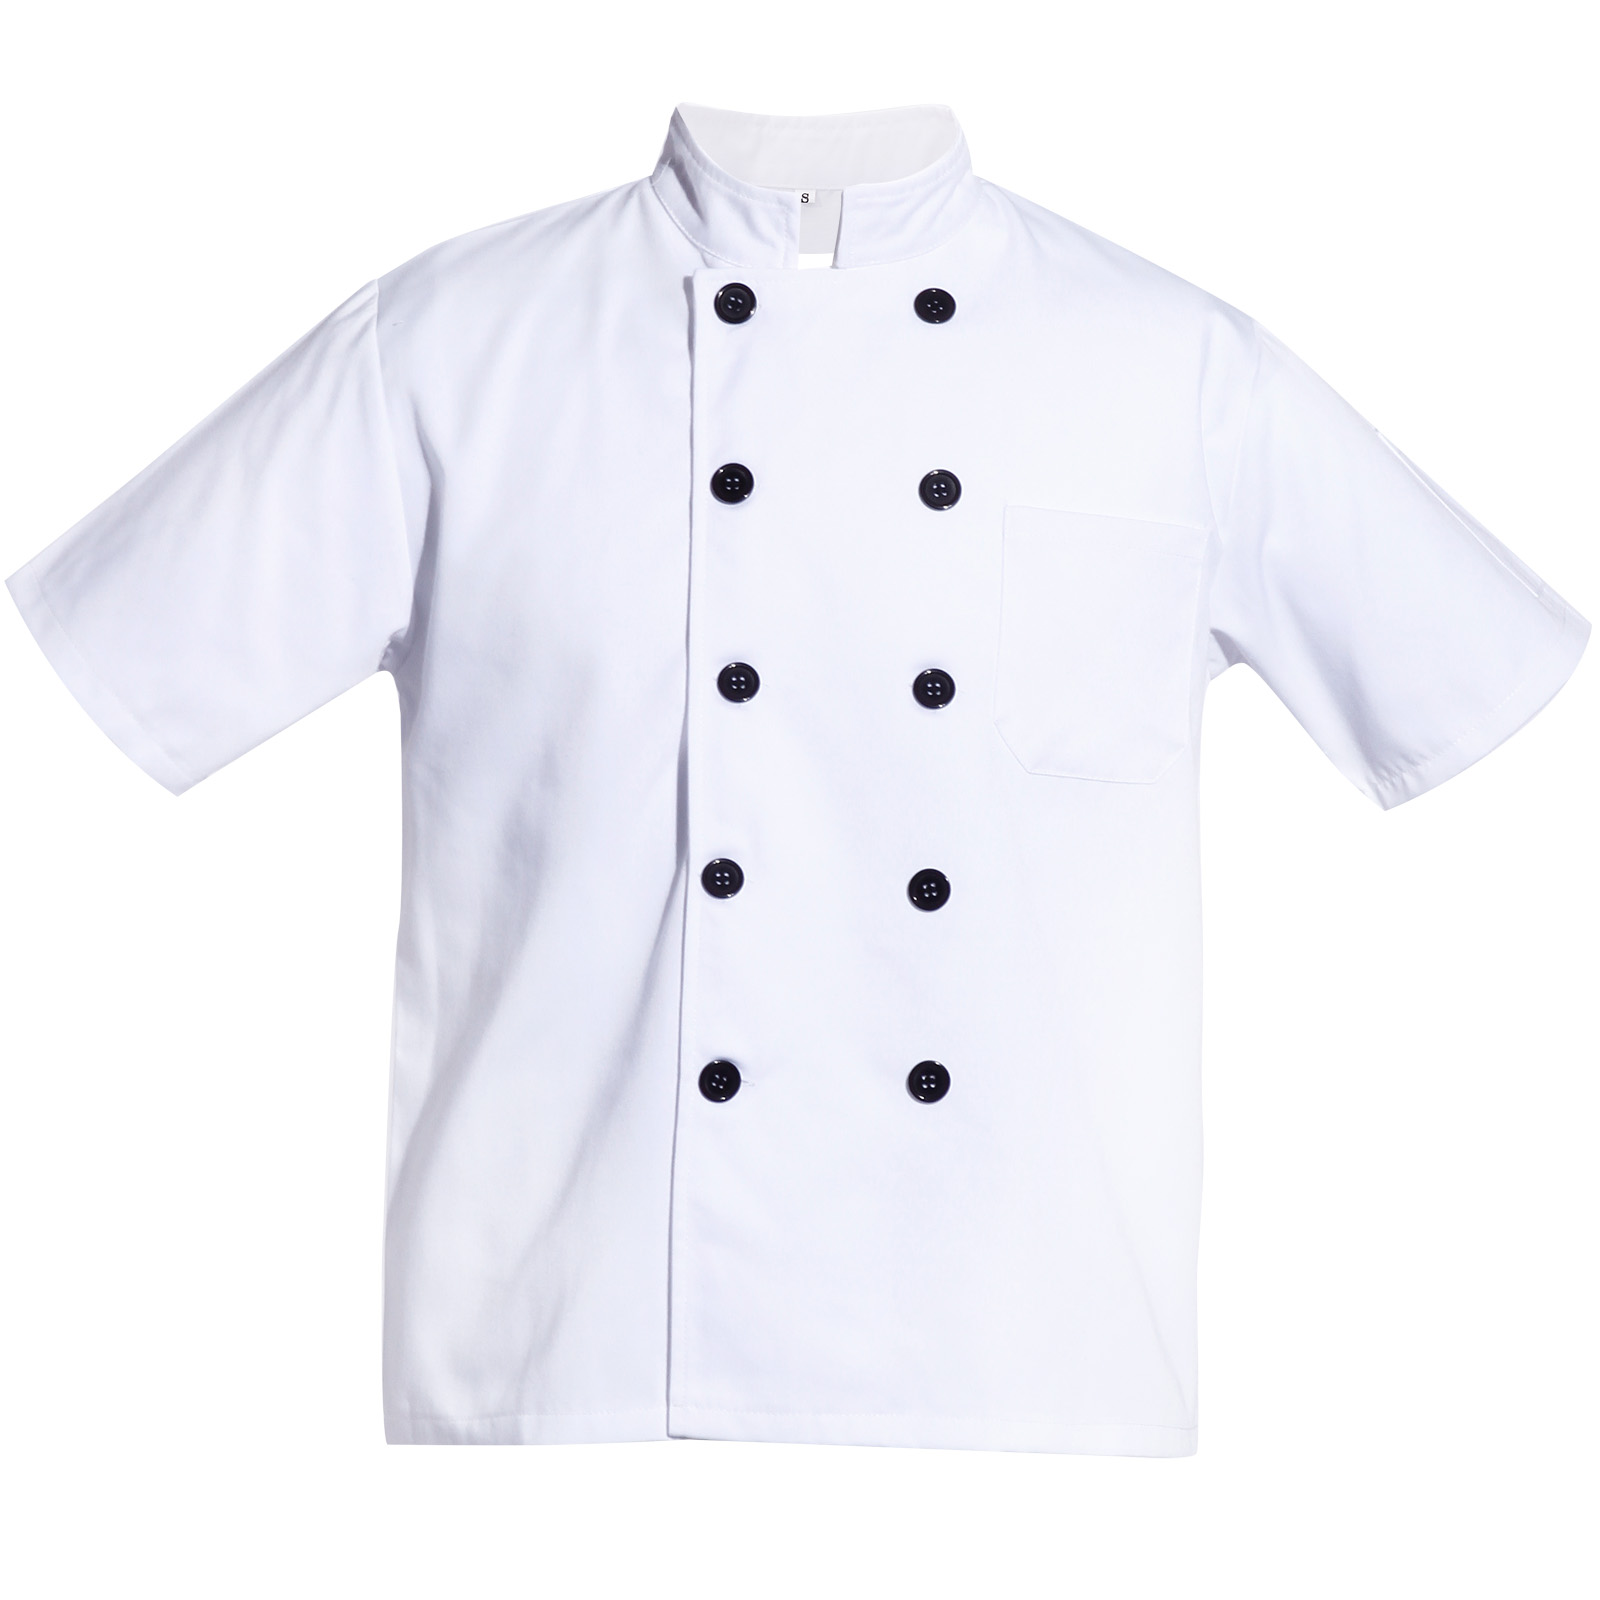 9eee4c53d85 Chefs Jacket Coat Chef Hat Chef s Trousers Pant Chefwear Catering Uniform